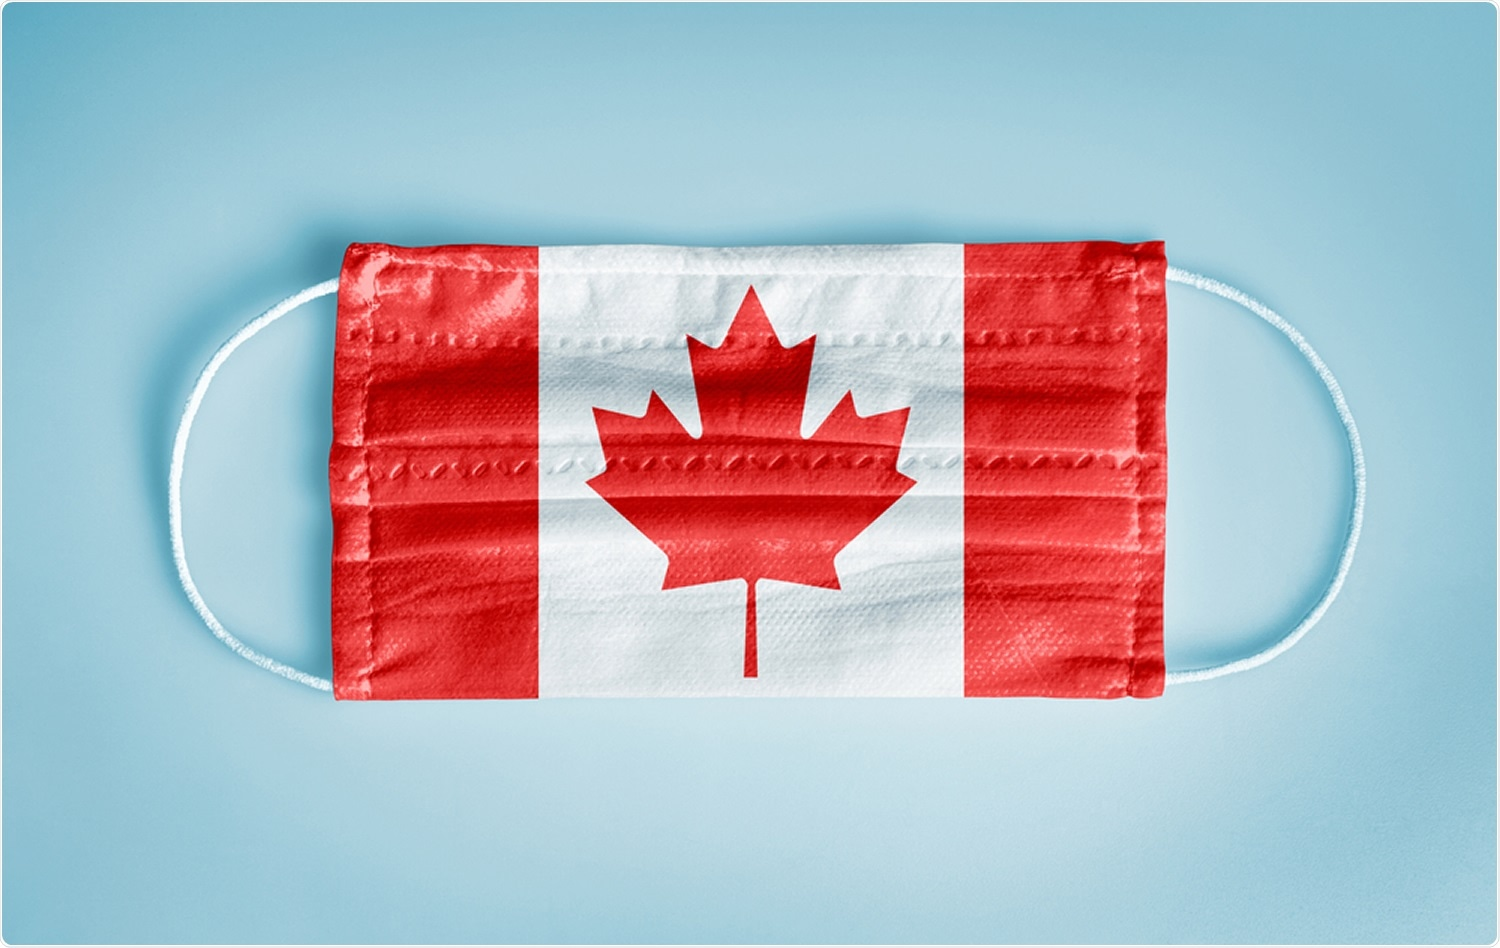 Study: Fall 2021 Resurgence and COVID-19 Seroprevalence in Canada Modelling waning and boosting COVID-19 immunity in Canada A Canadian Immunization Research Network Study. Image Credit: Morrowind / Shutterstock